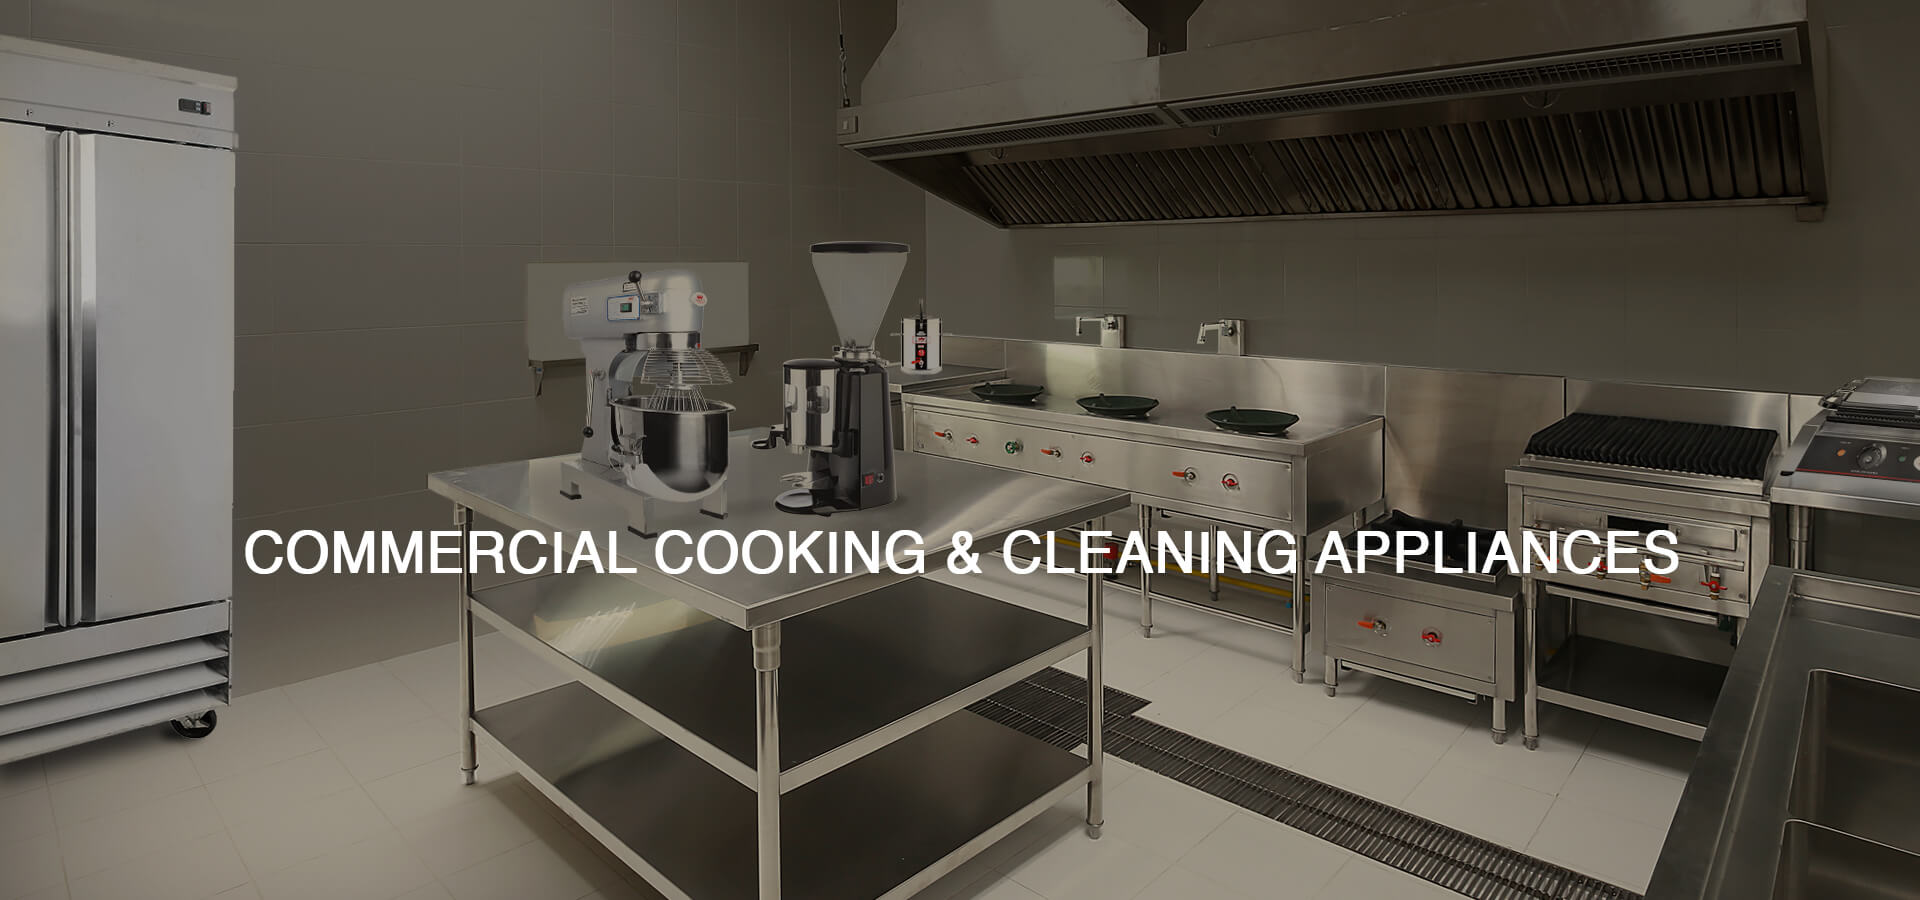 Caterina Commercial Cooking Cleaning Appliances Kenya